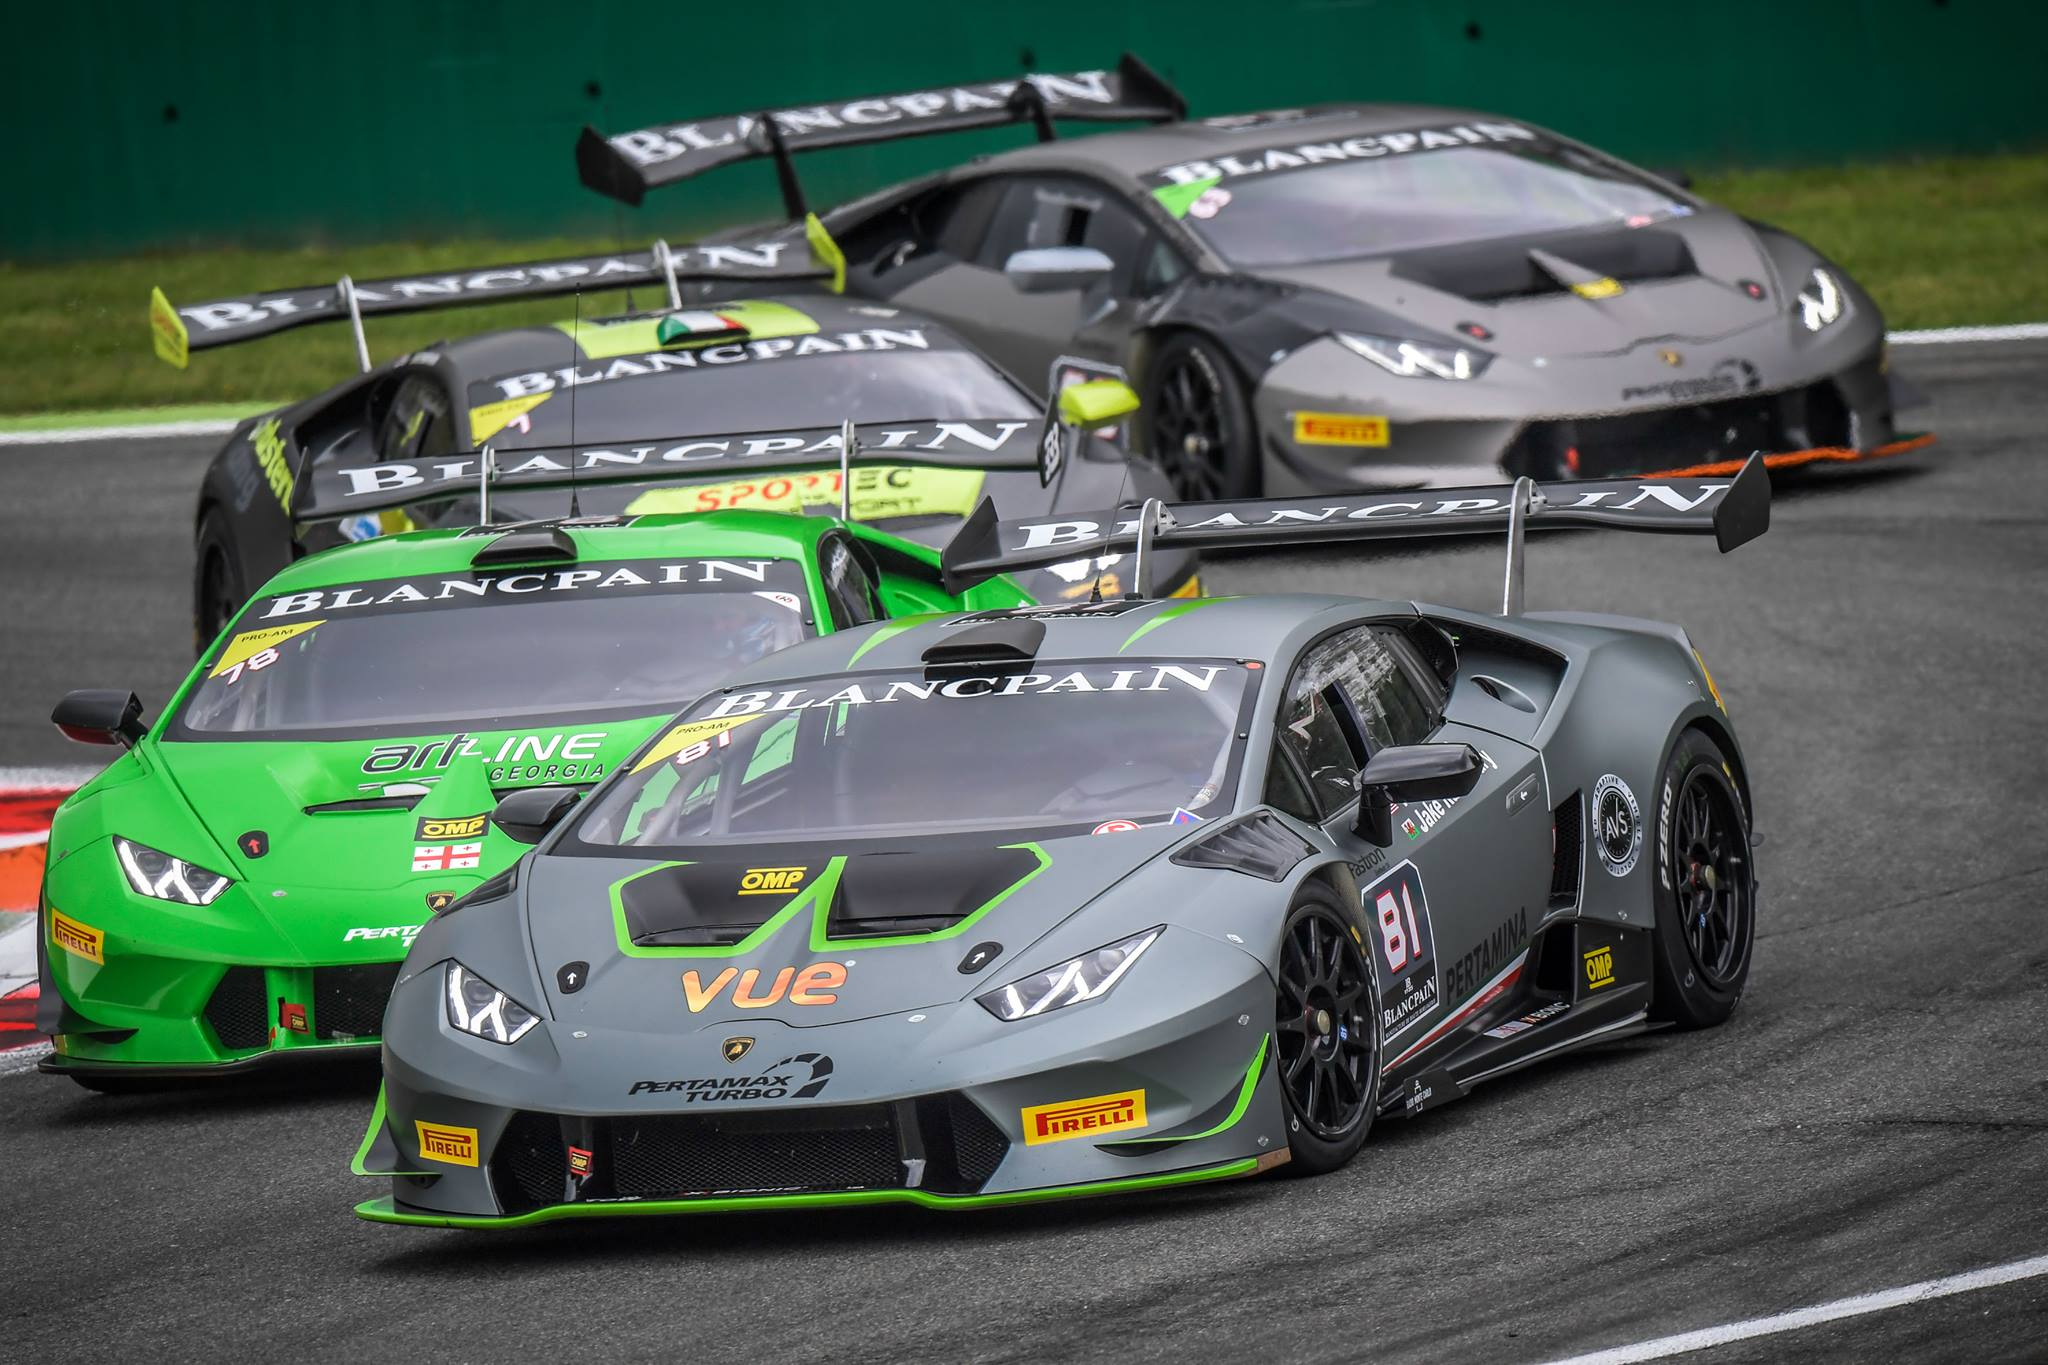 lamborghini blancpain super trofeo monza 2016 highlights gtspirit. Black Bedroom Furniture Sets. Home Design Ideas